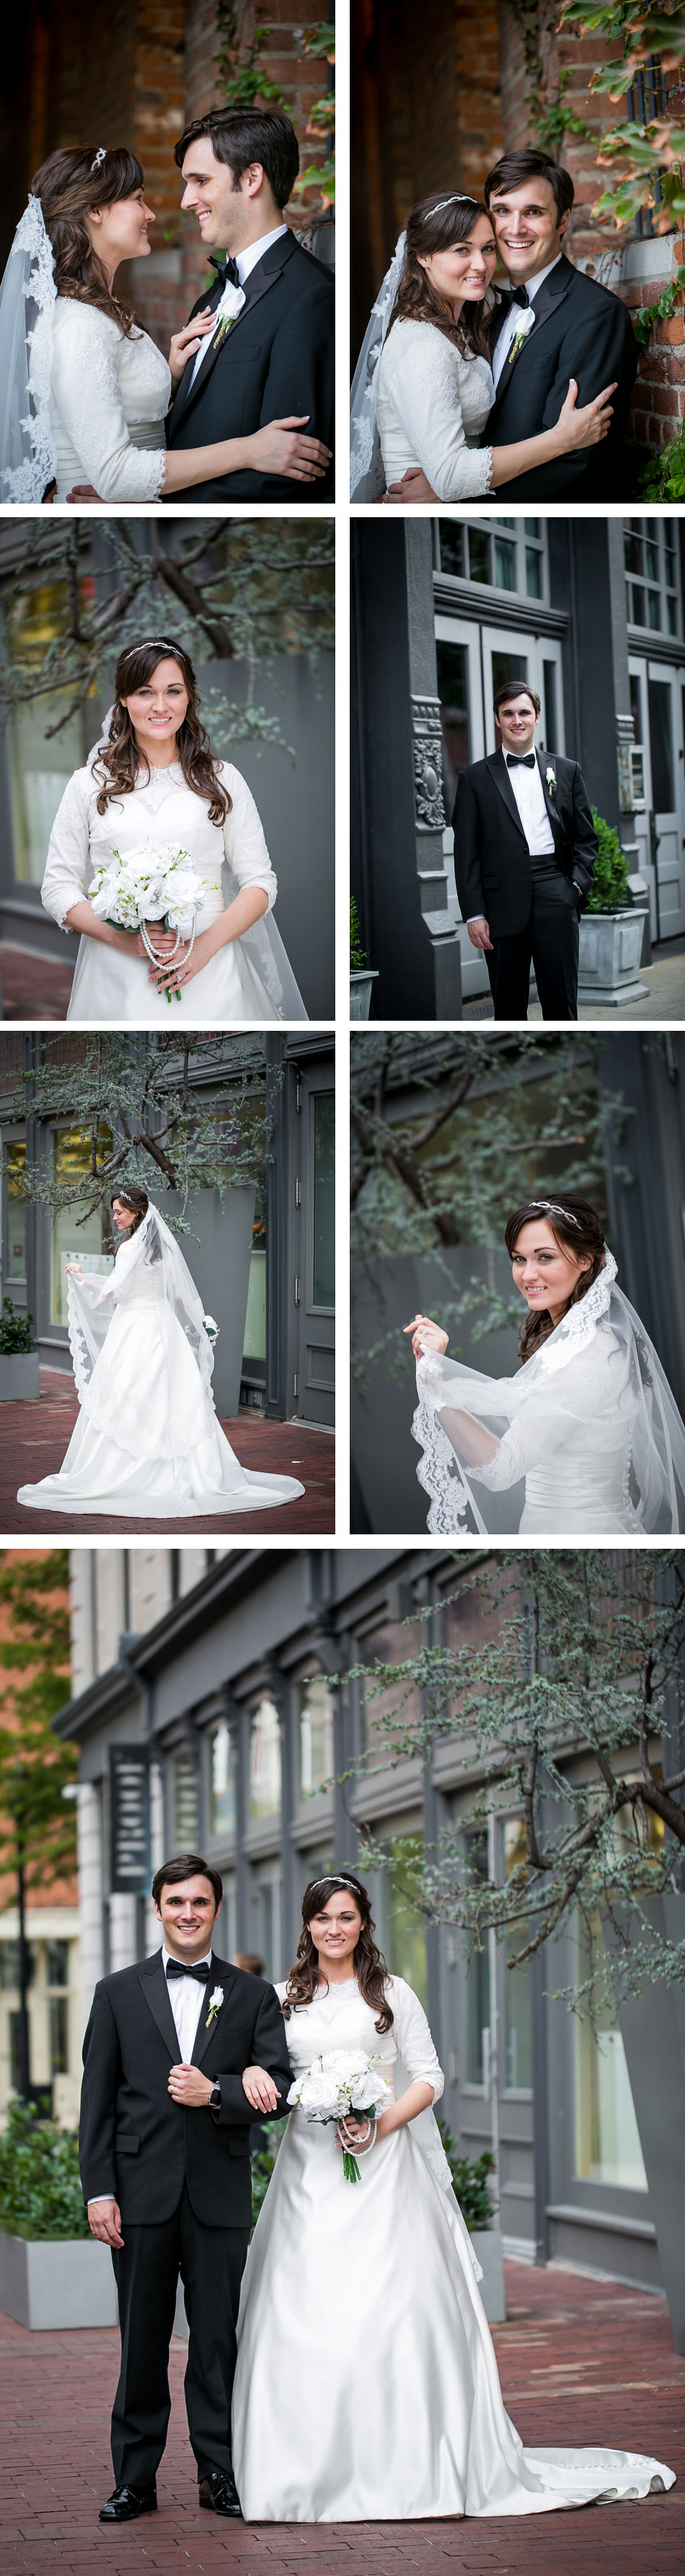 Main street louisville wedding photos